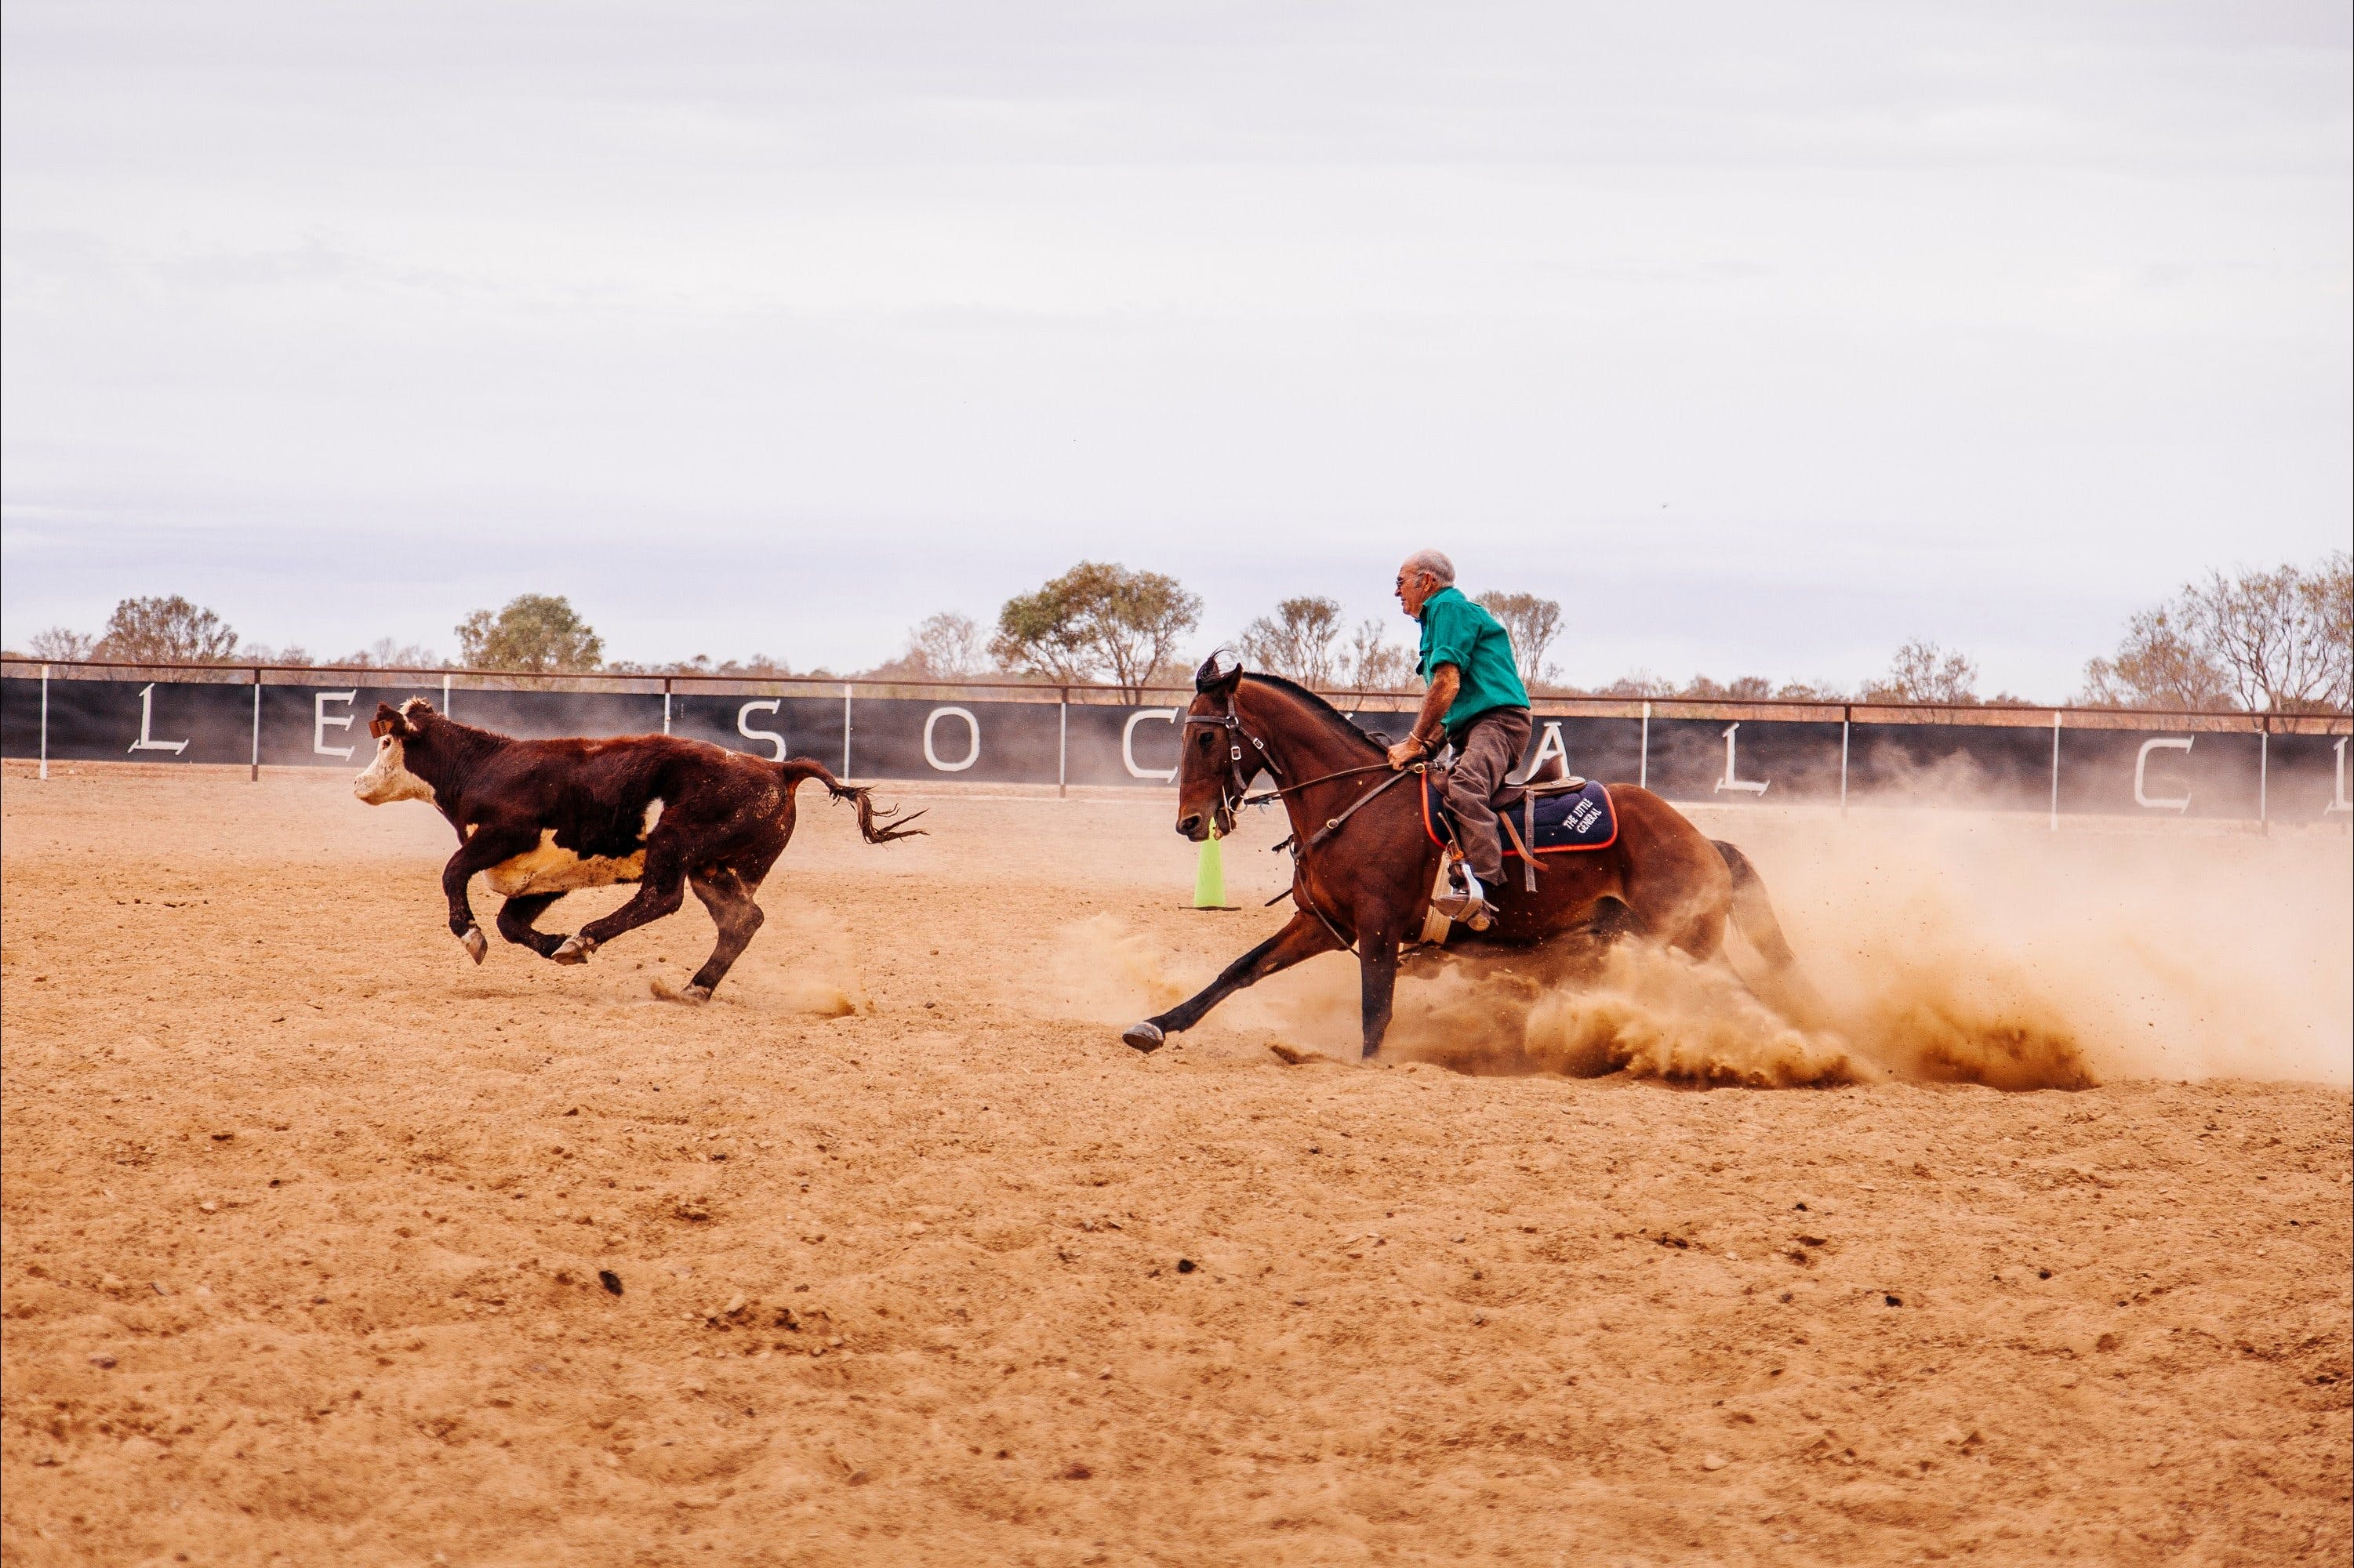 Birdsville Campdraft  Rodeo and Bronco Branding - Stayed